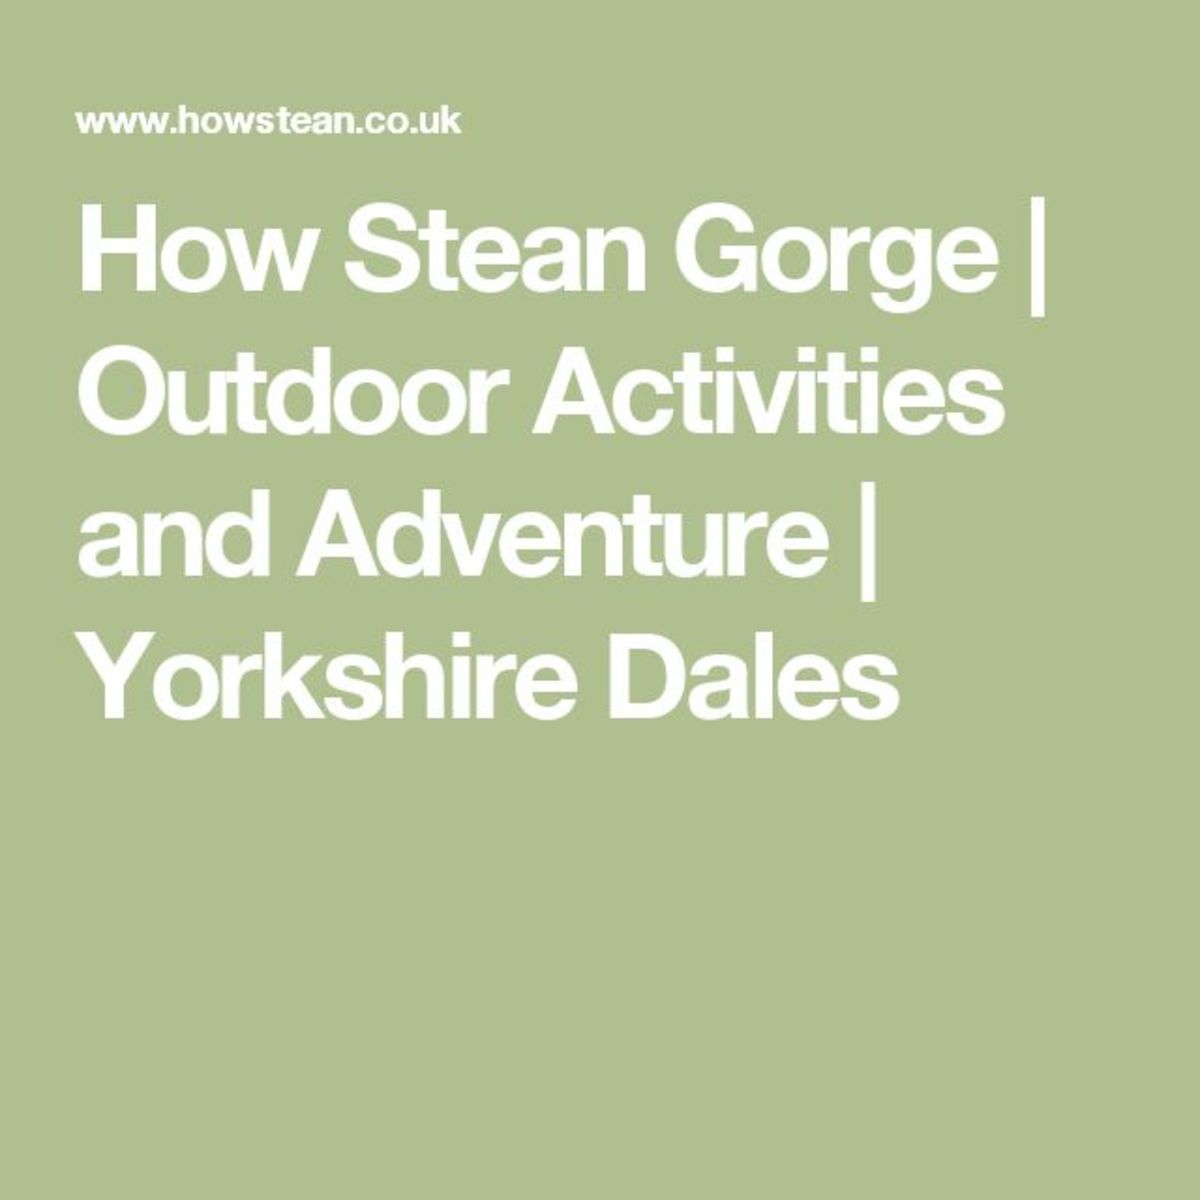 A full family activities guide to help you find your way around and enjoy the facilities offered in Nidderdale for the outdoor life